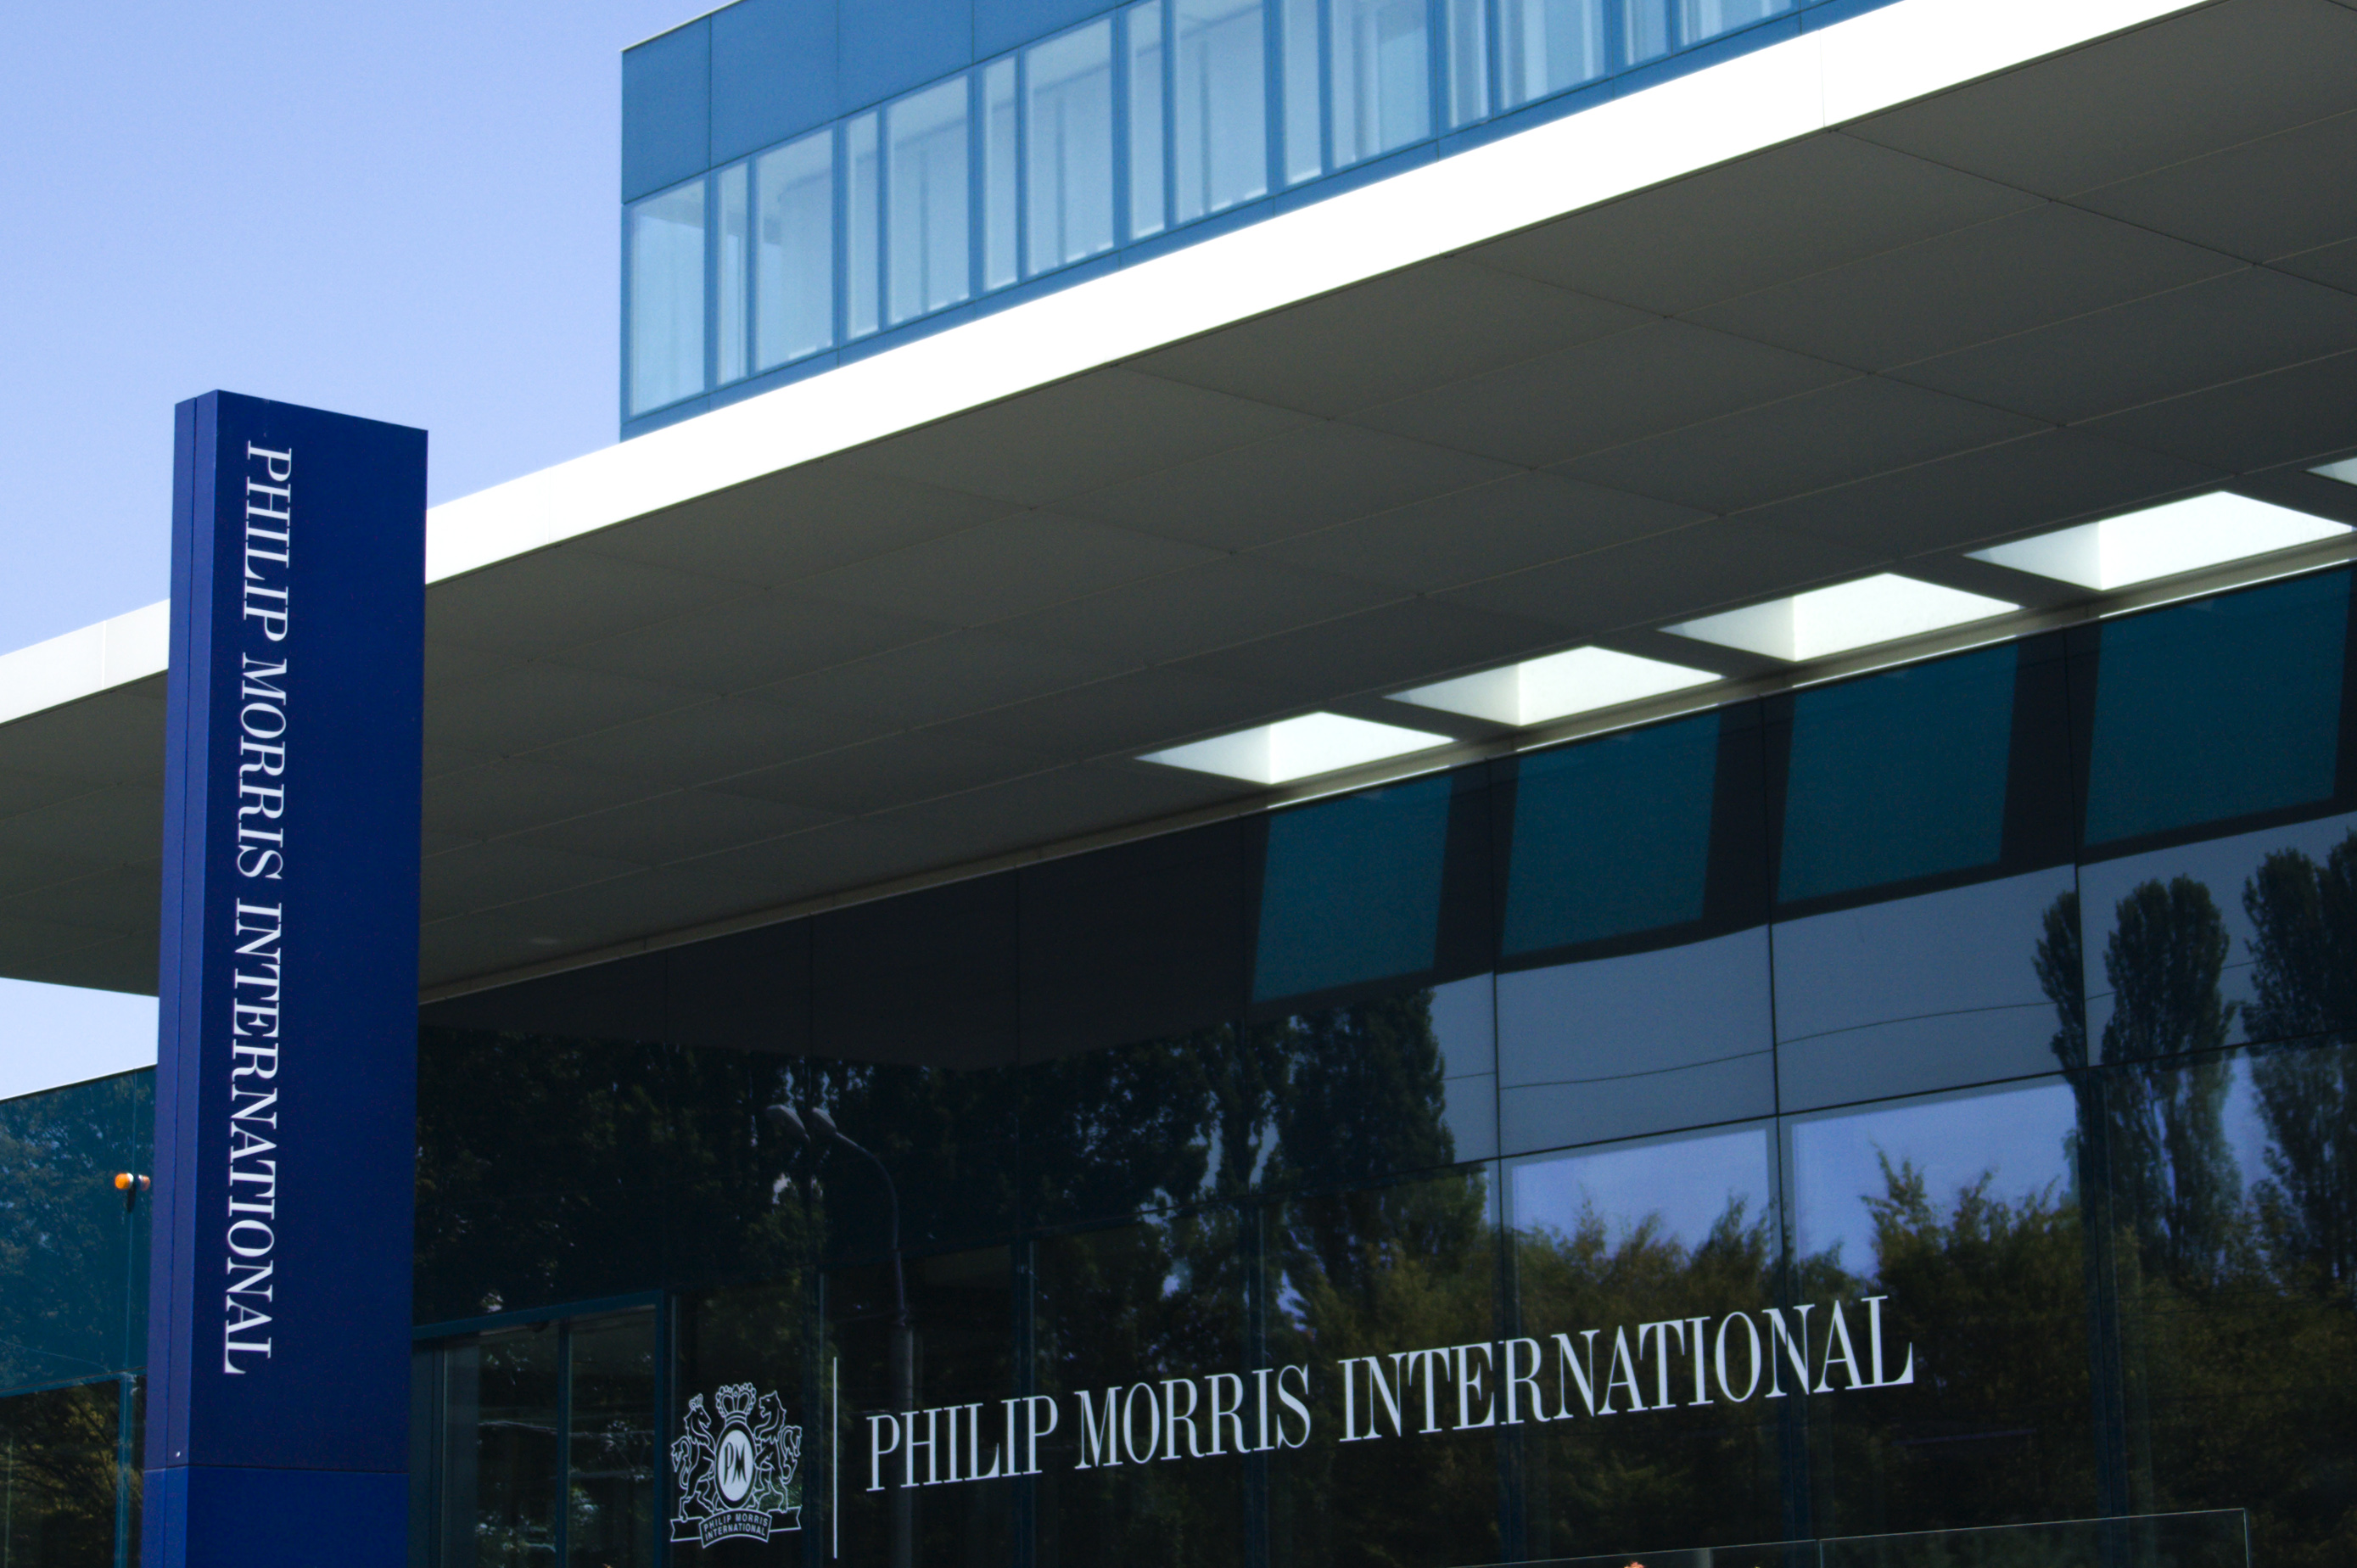 Philip Morris International Operation Center is pictured in Lausanne August 19, 2009. REUTERS/Denis Balibouse/Files